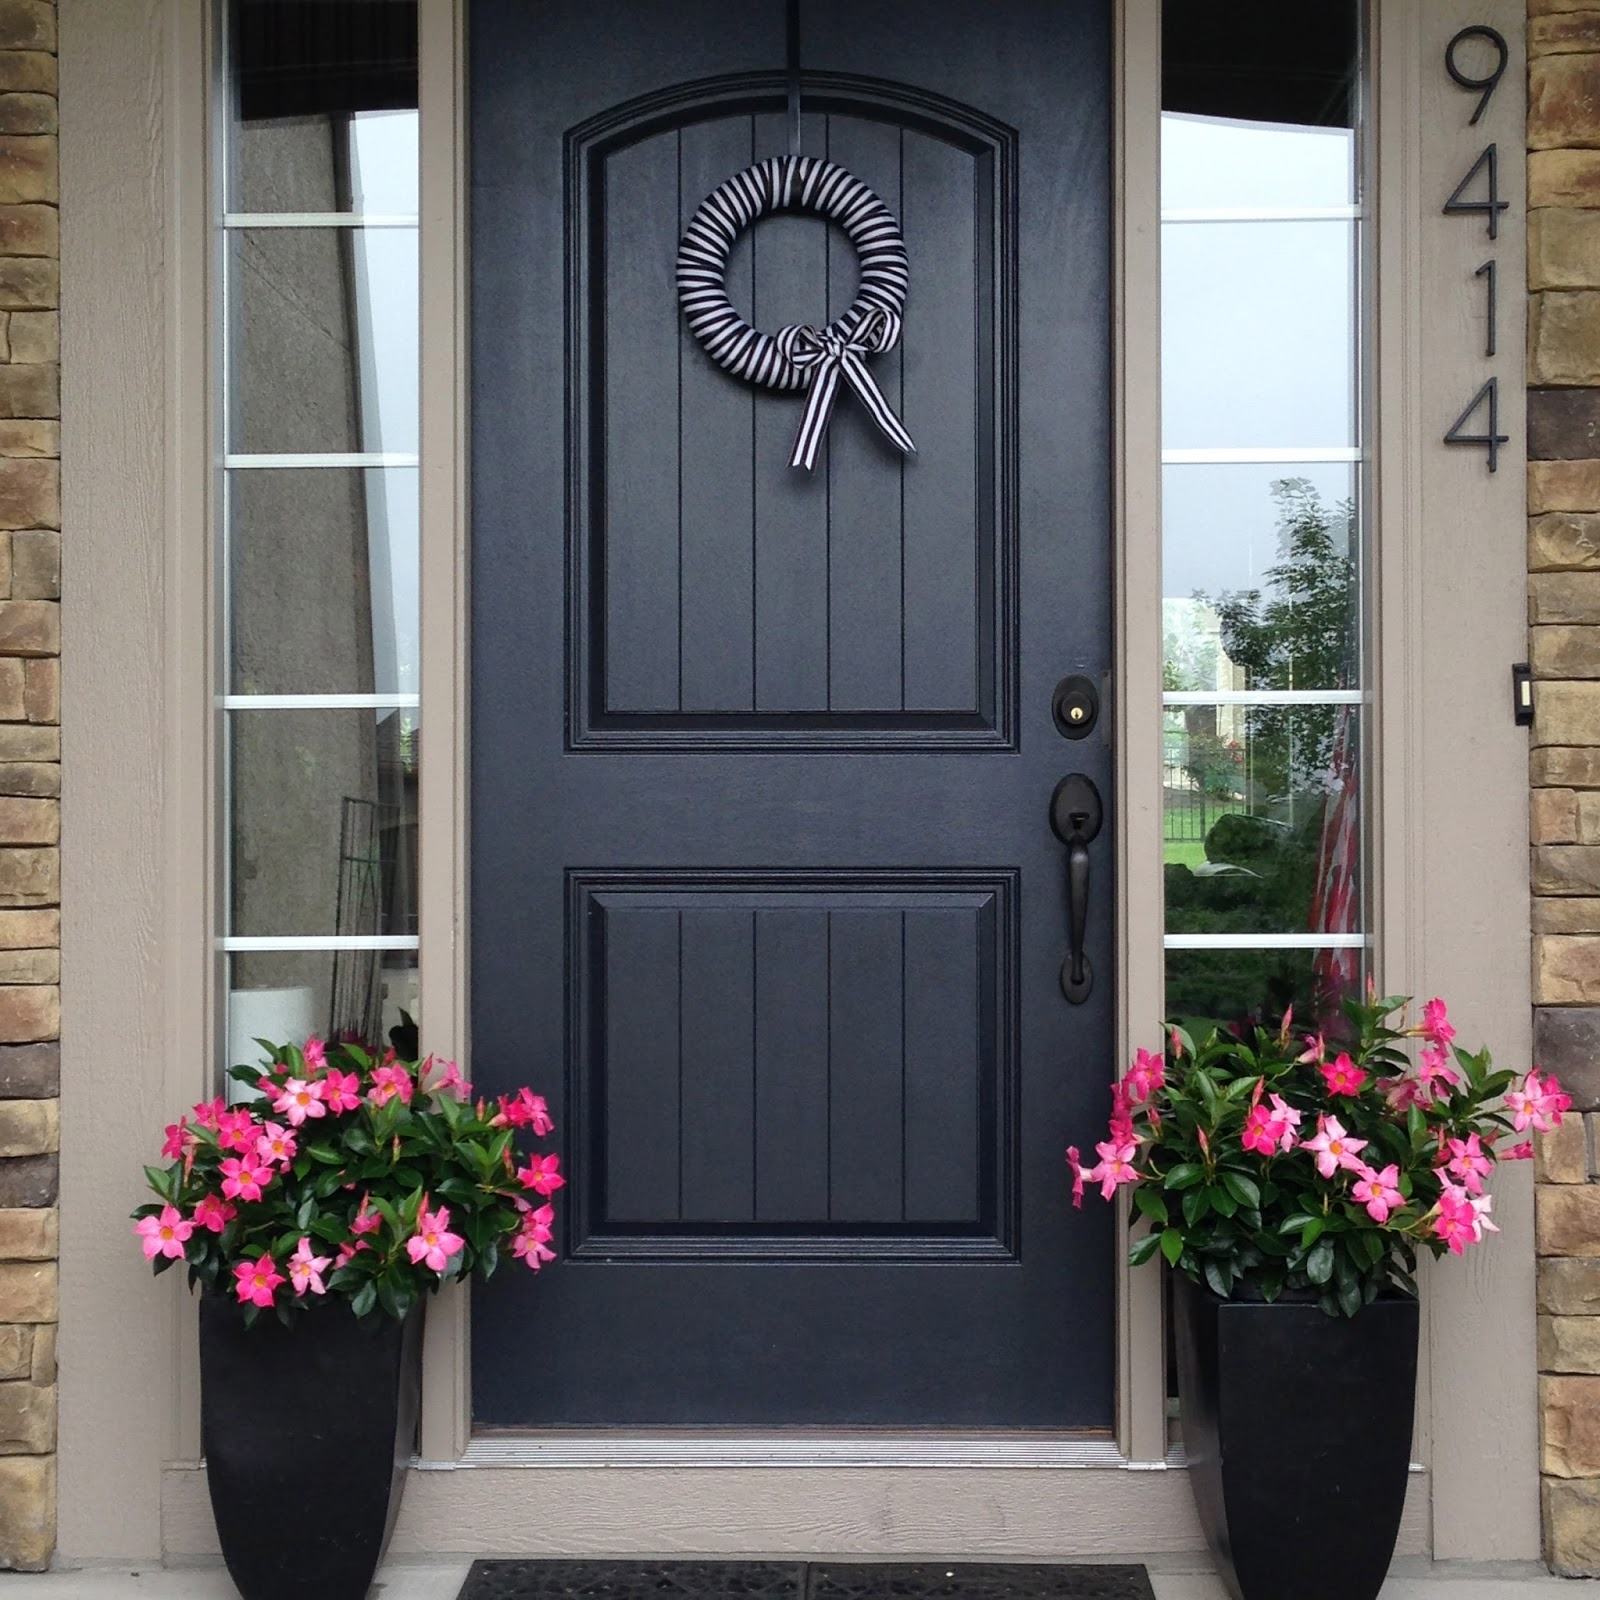 Life love larson front door dreaming for New front doors for homes